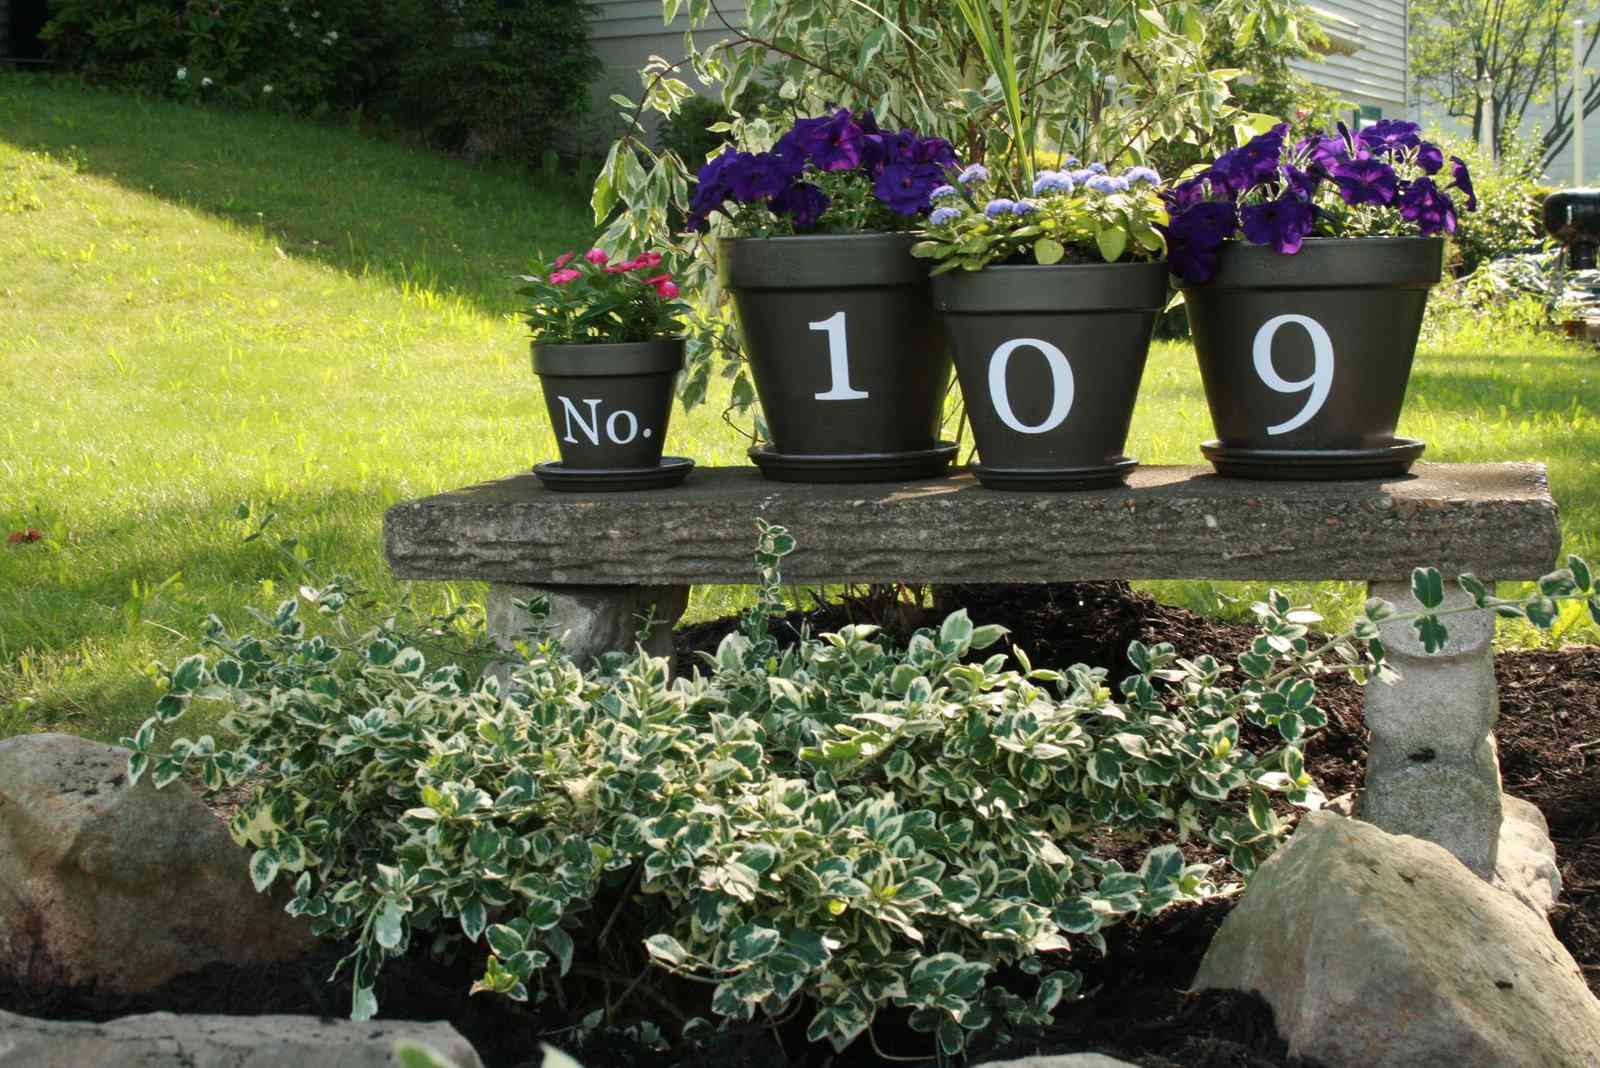 Flower pots painted with address numbers.